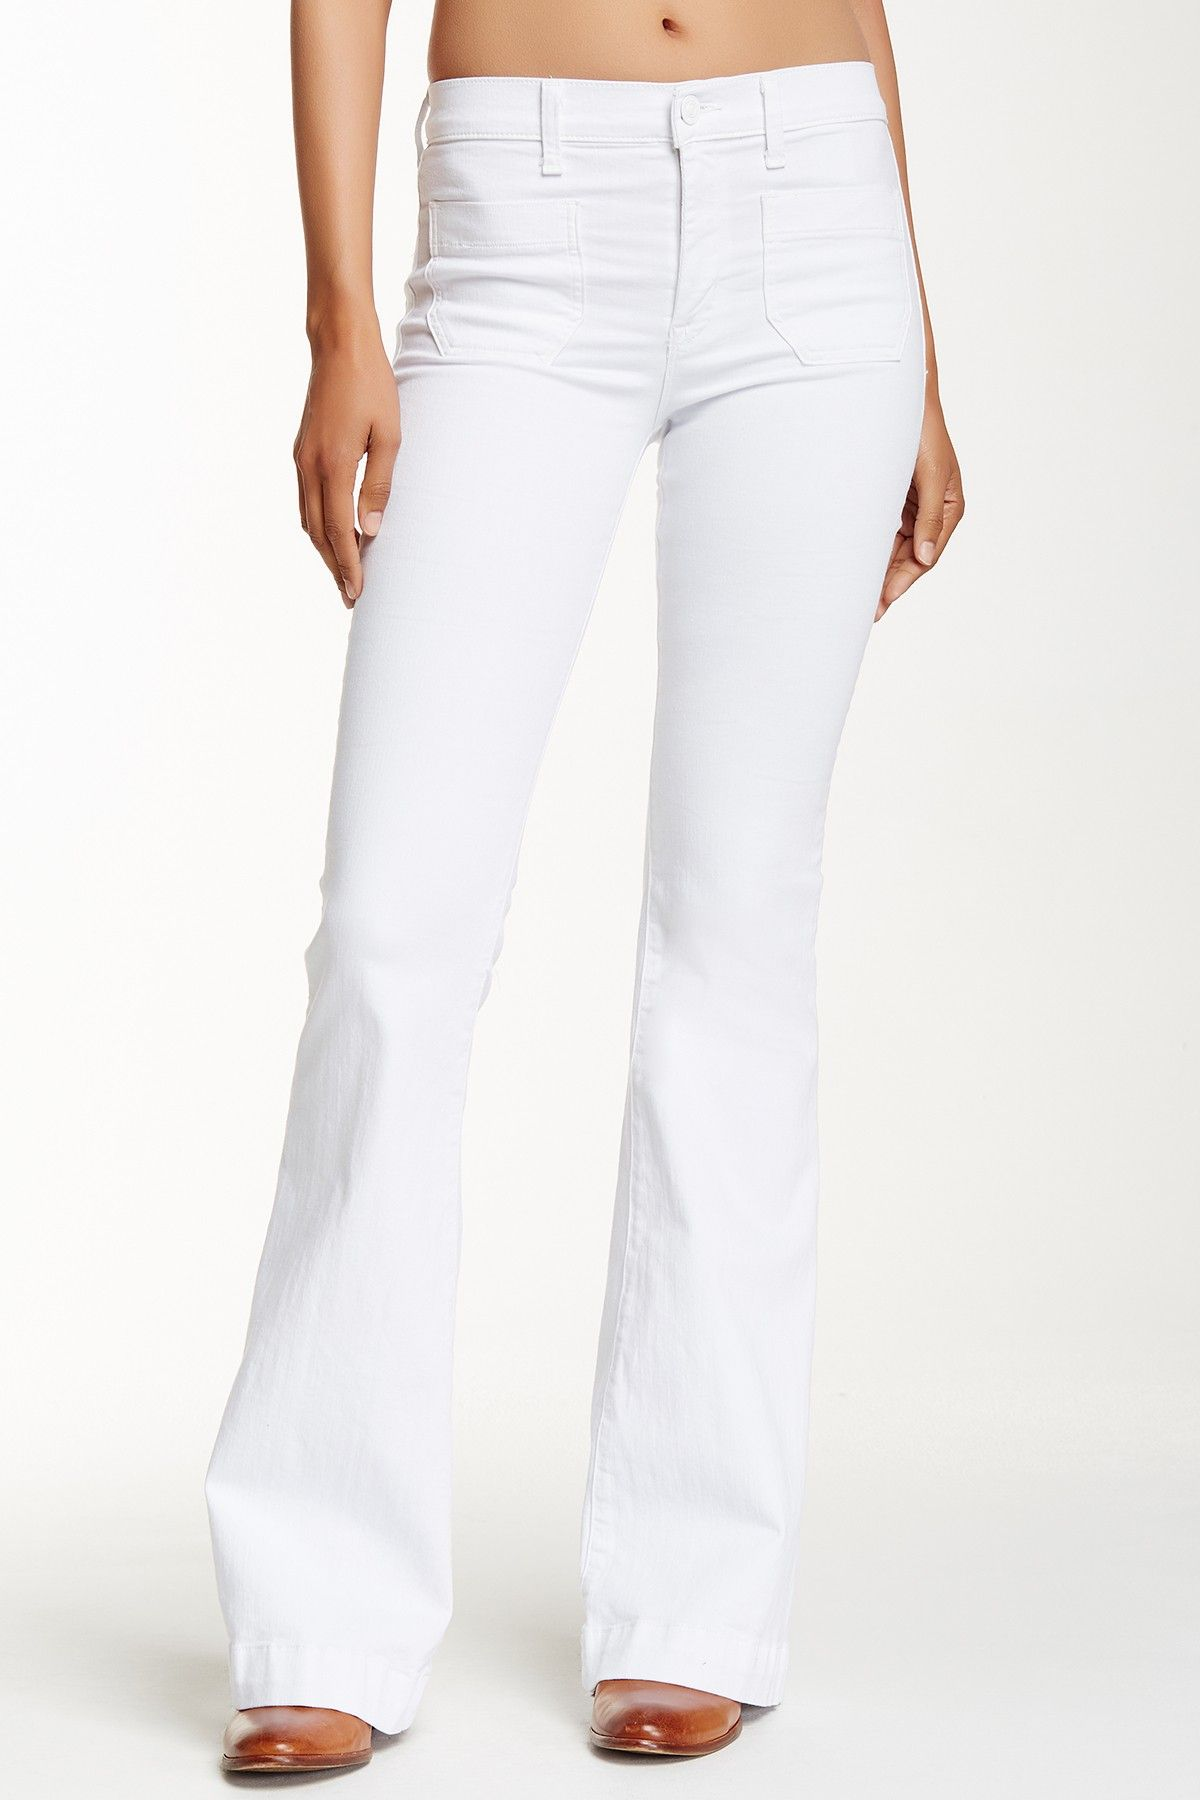 Taylor High Waist Flare Jean by HUDSON Jeans on @nordstrom_rack